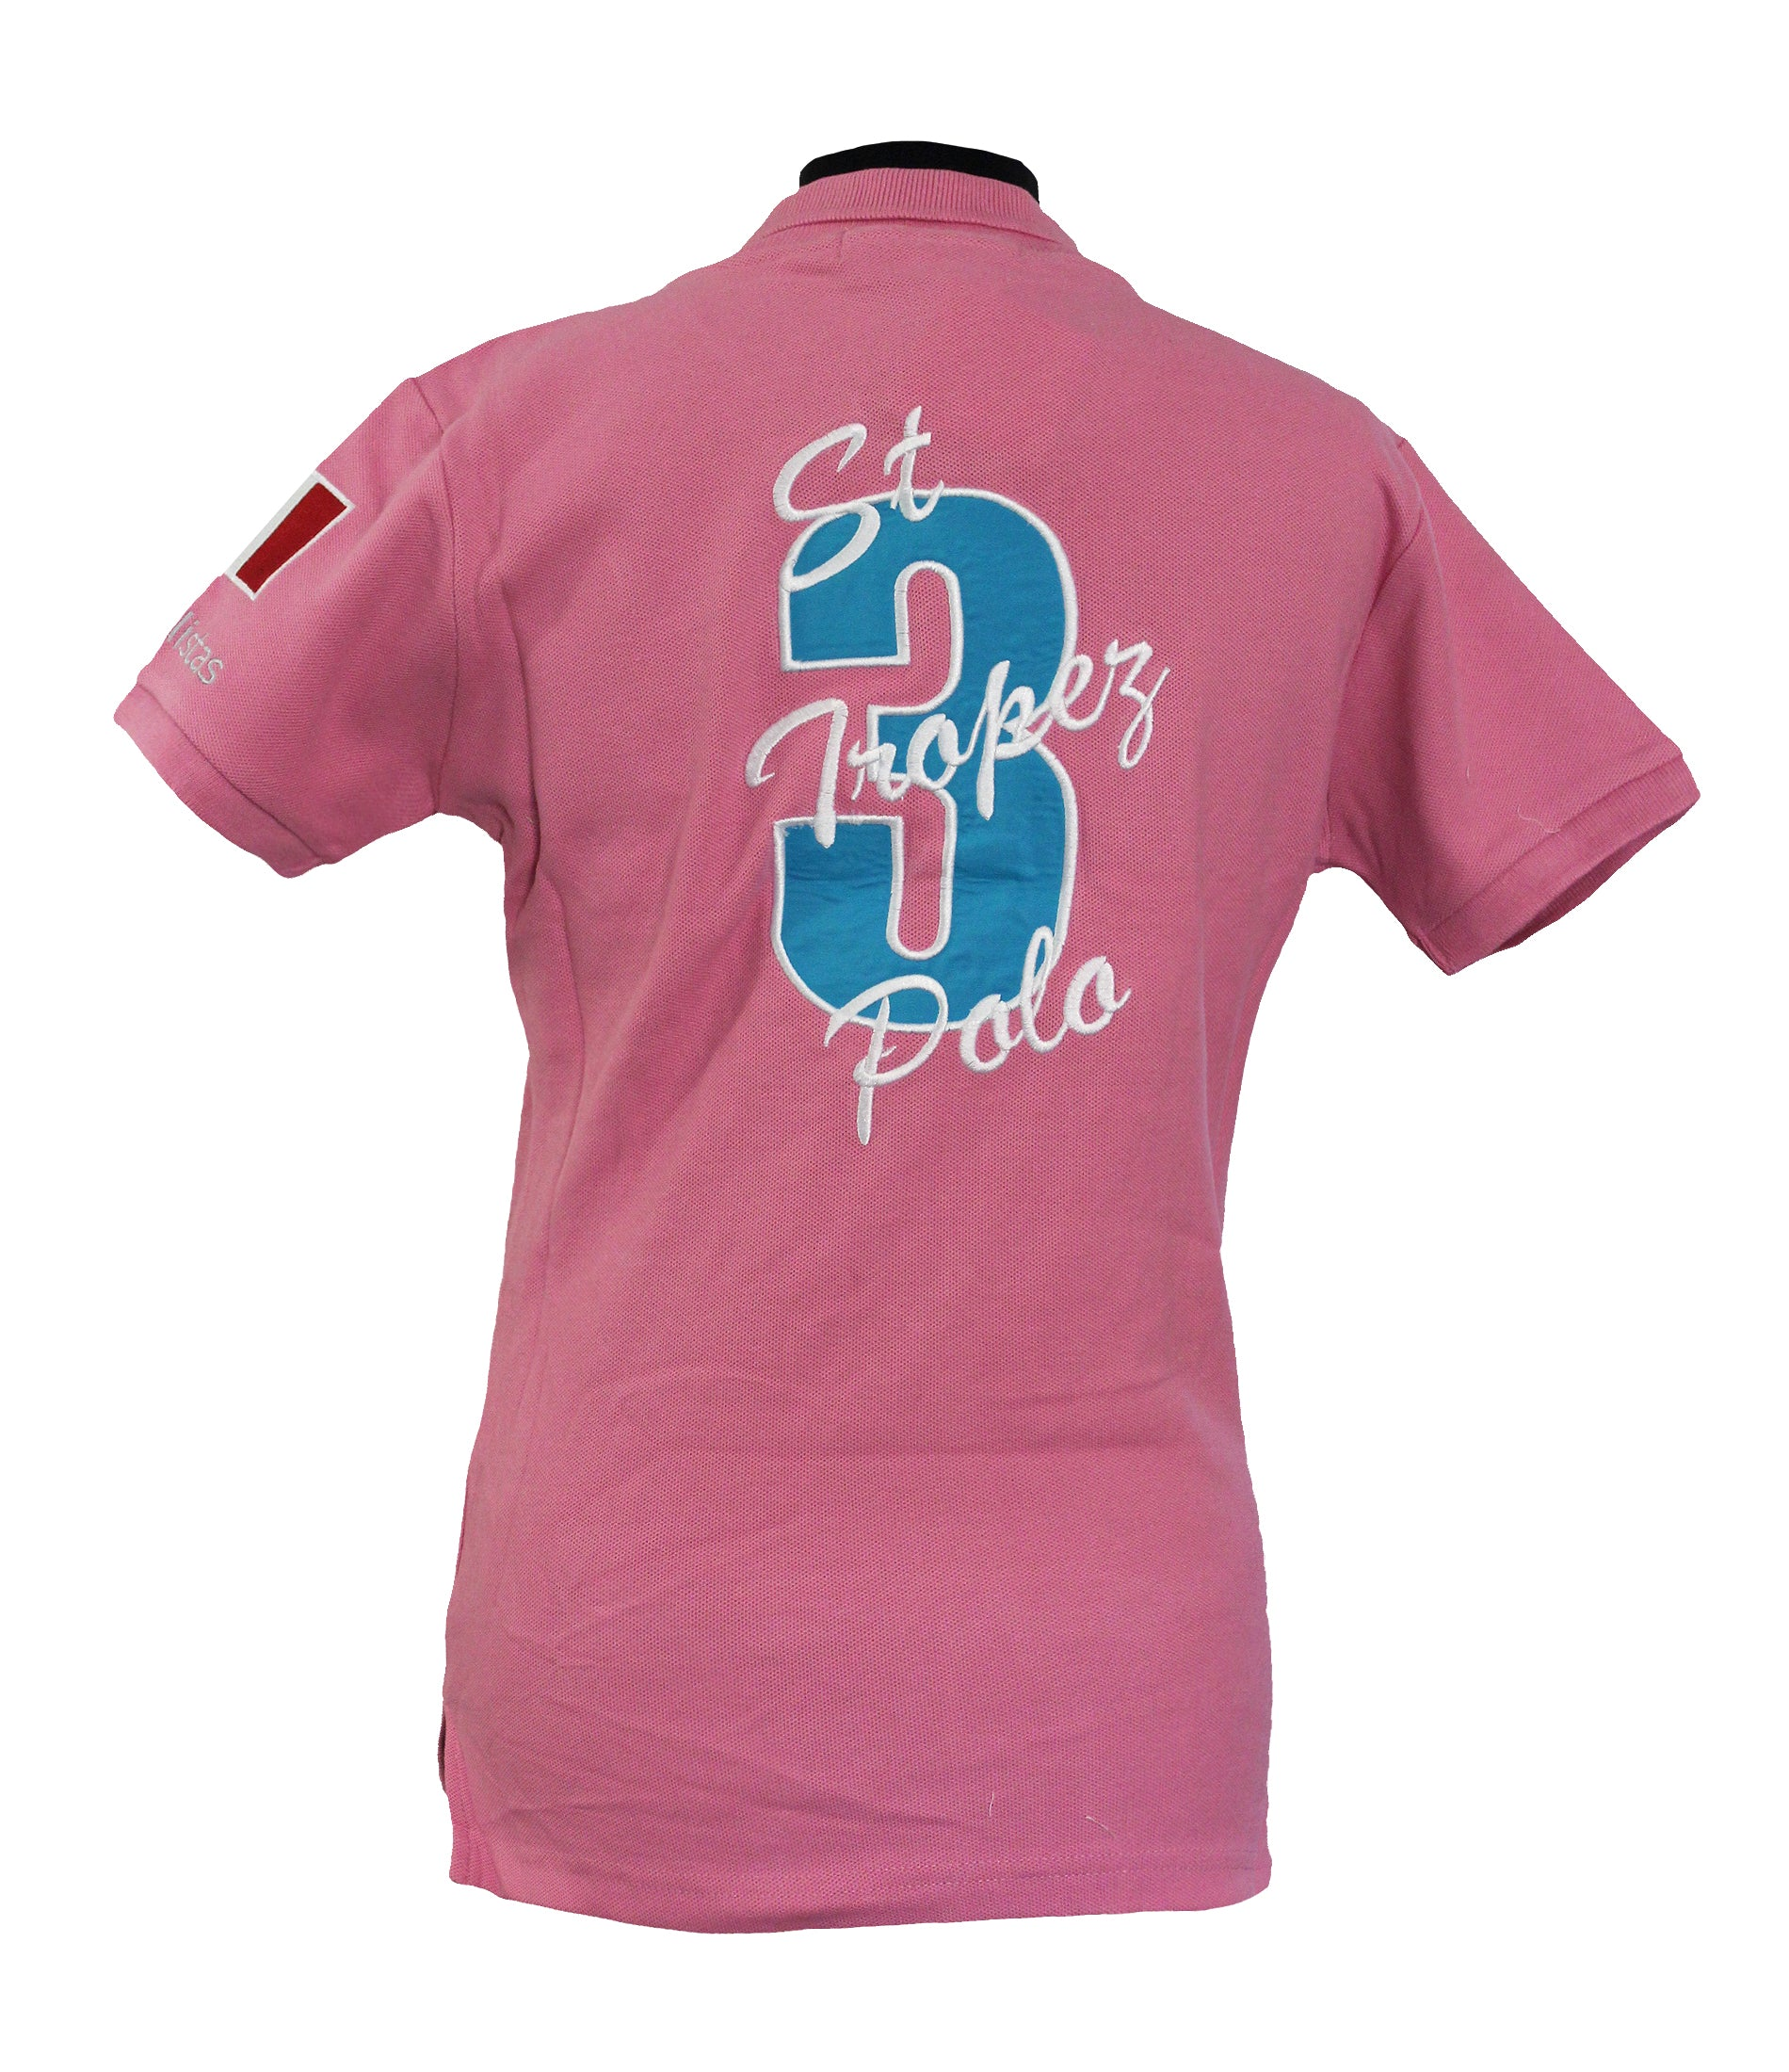 Polistas Ladies st.Tropez Pink Polo Shirt RRP£99.95 NOW £25.00